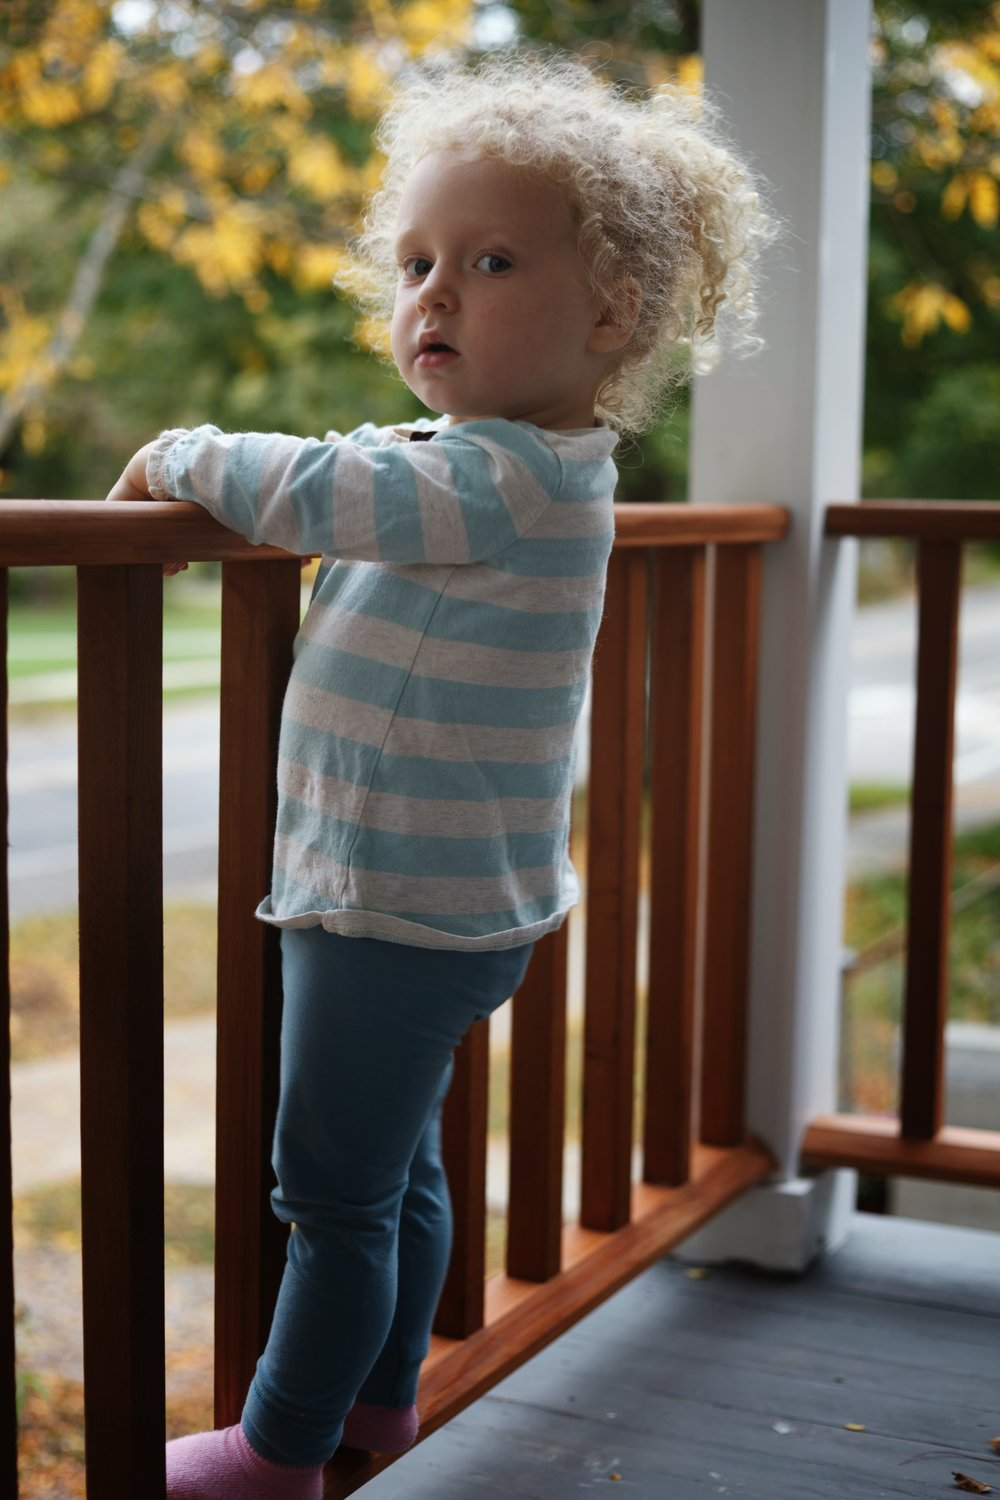 Yeah, my daughter is standing on a railing that I built.  I wouldn't let her do that unless I trusted my own work.